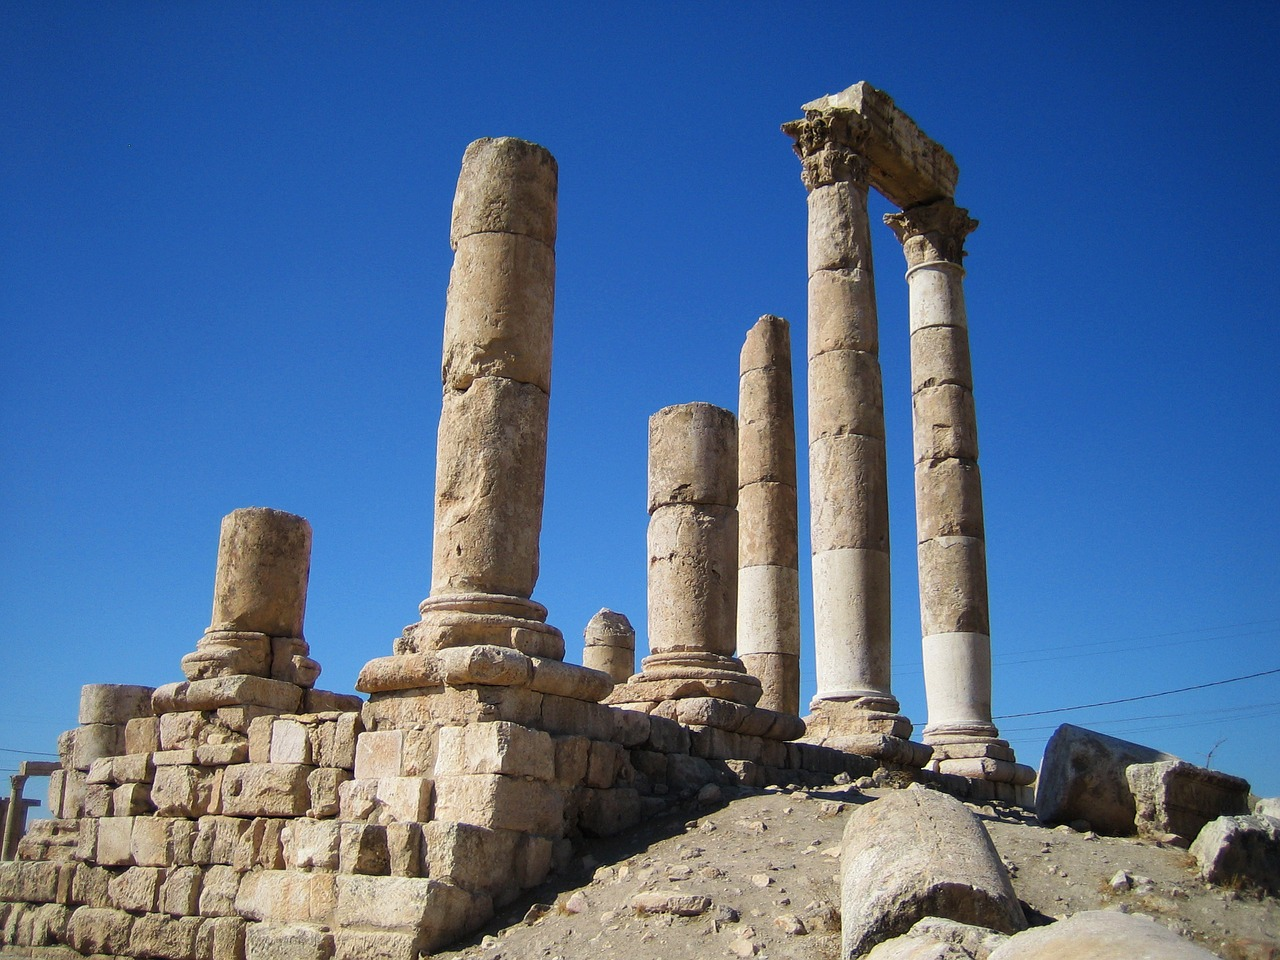 Amman, the capital city of Jordan.